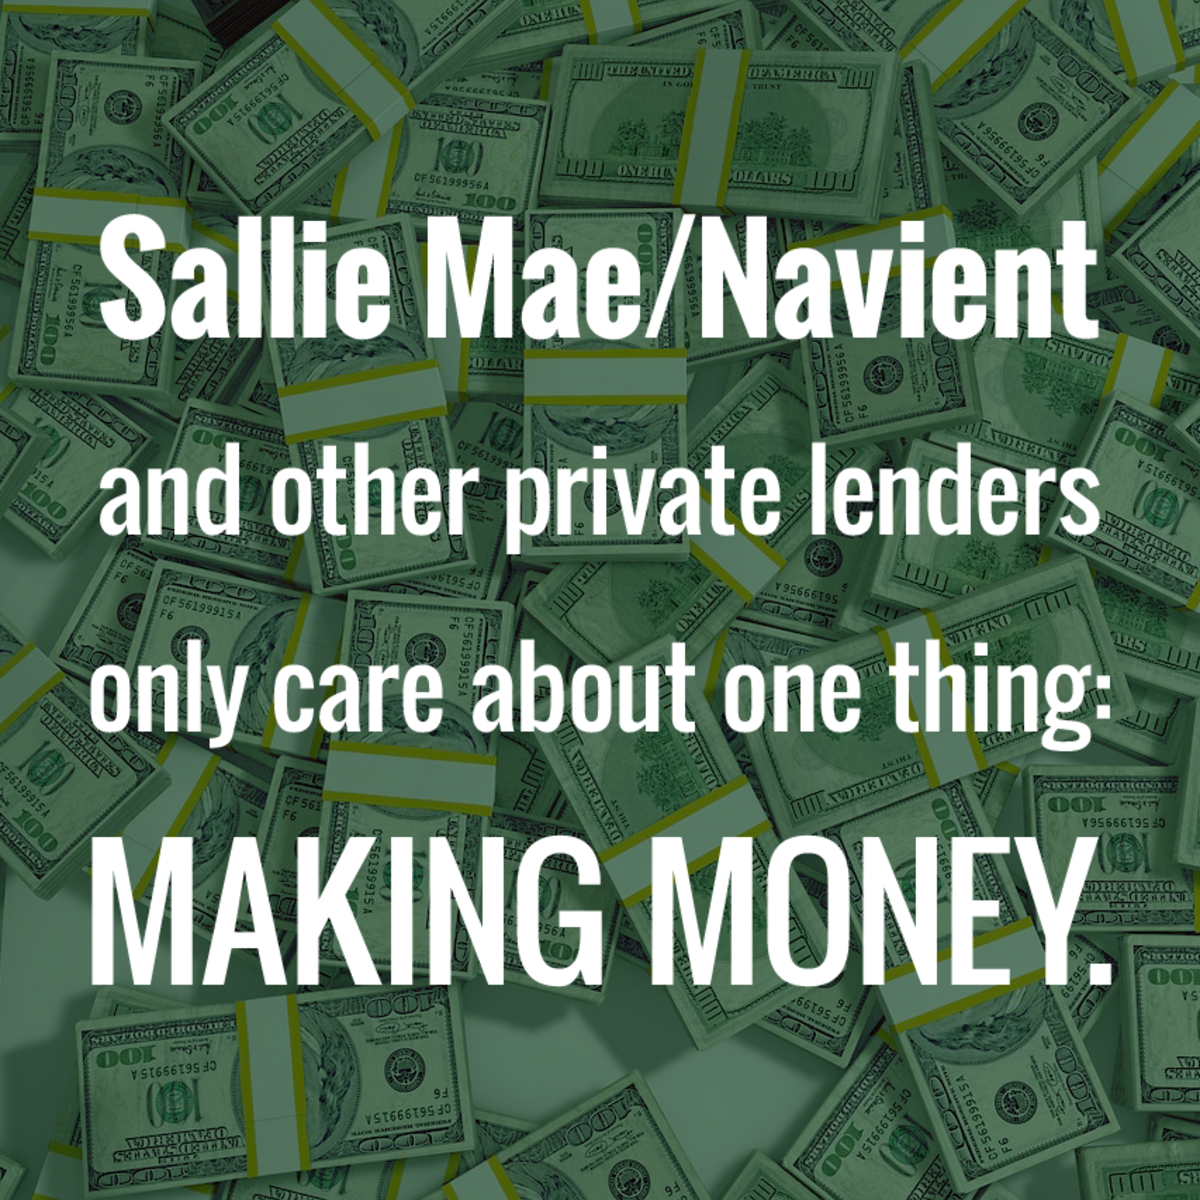 Sallie Mae/Navient and other Private Lenders only care about one thing: making money.